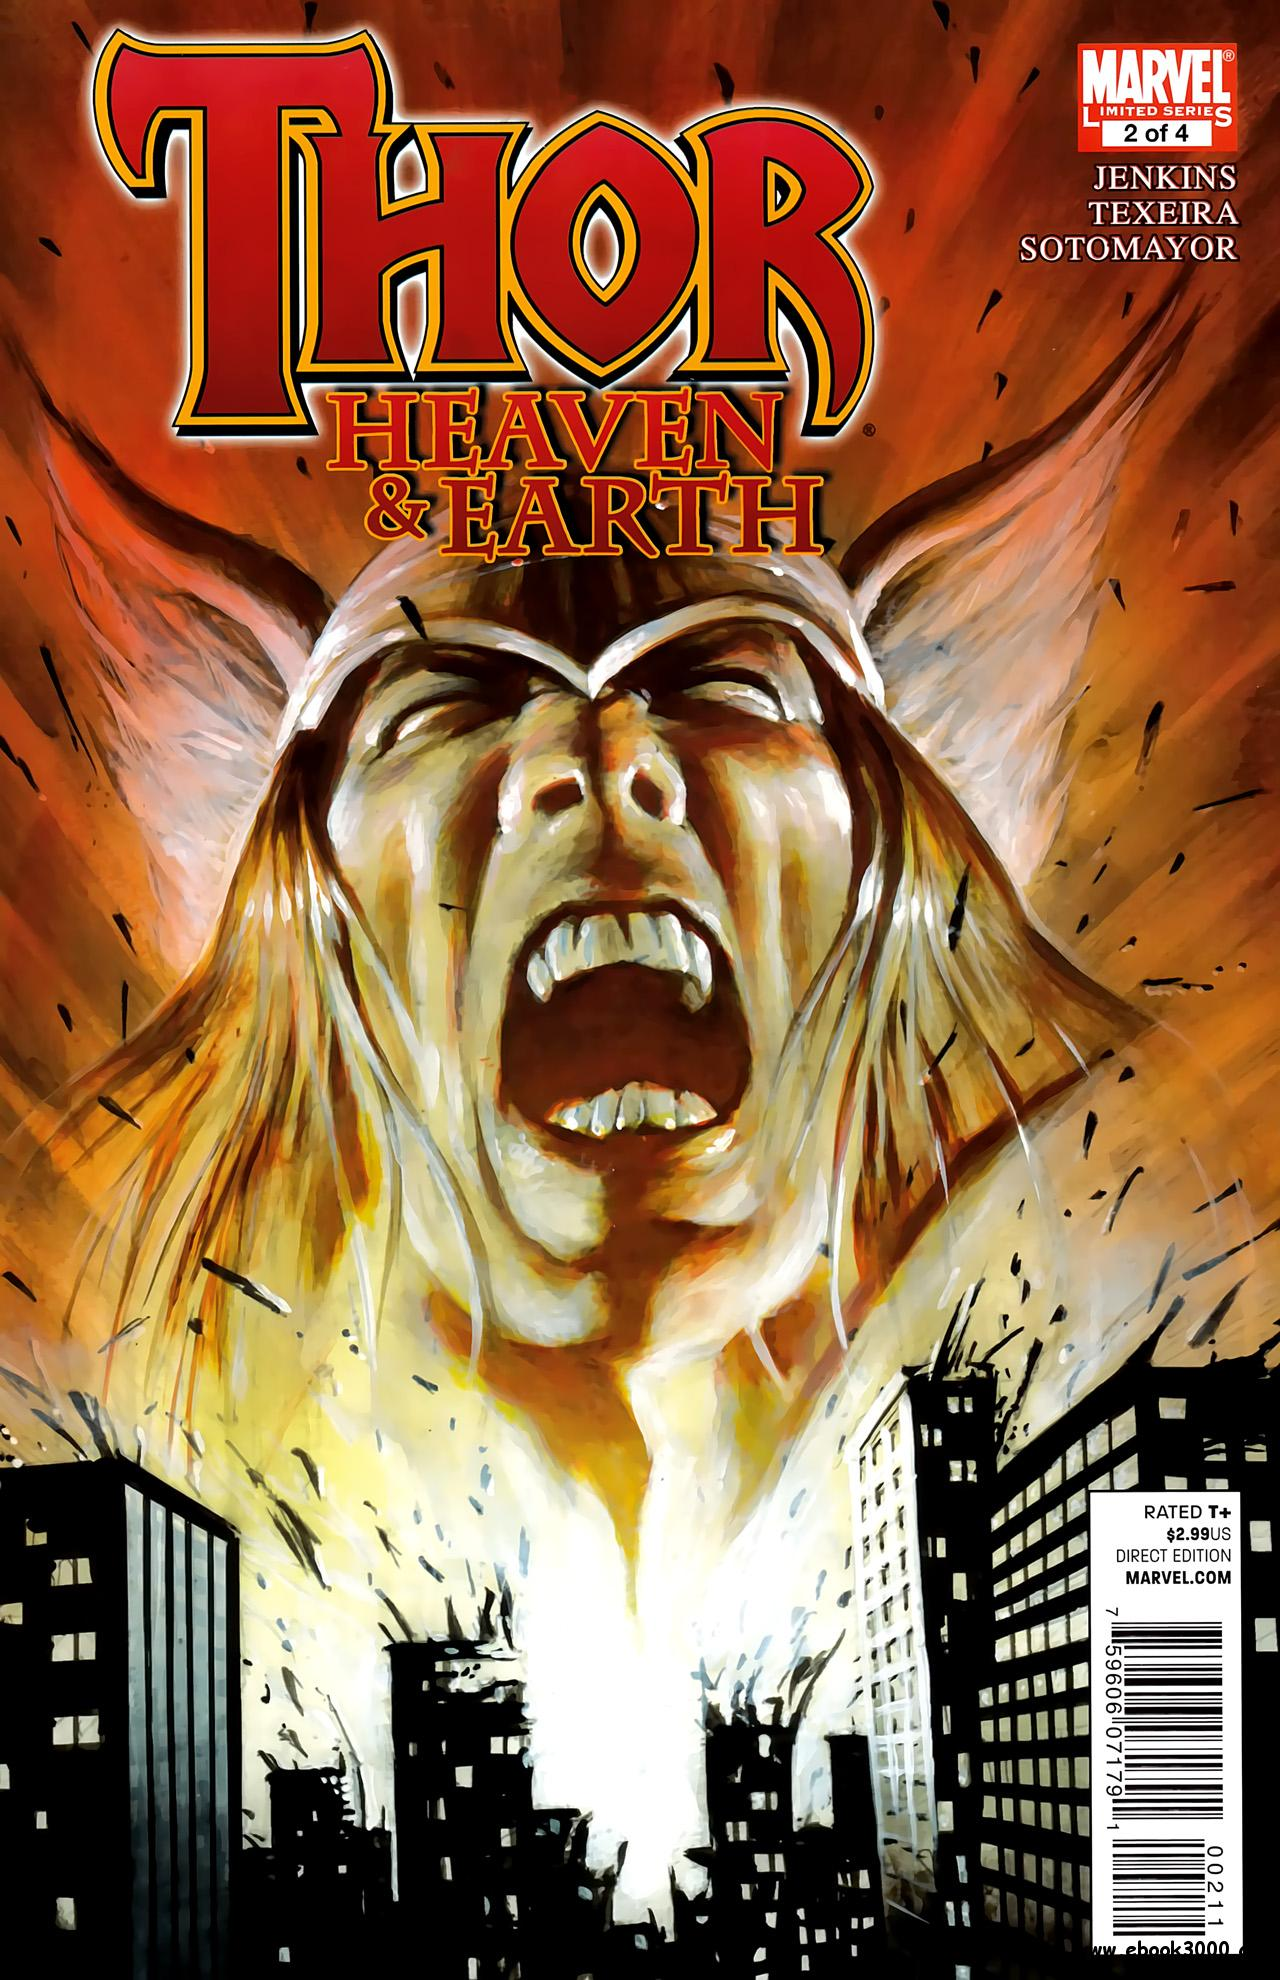 Thor - Heaven & Earth #2 (of 04) (2011) free download